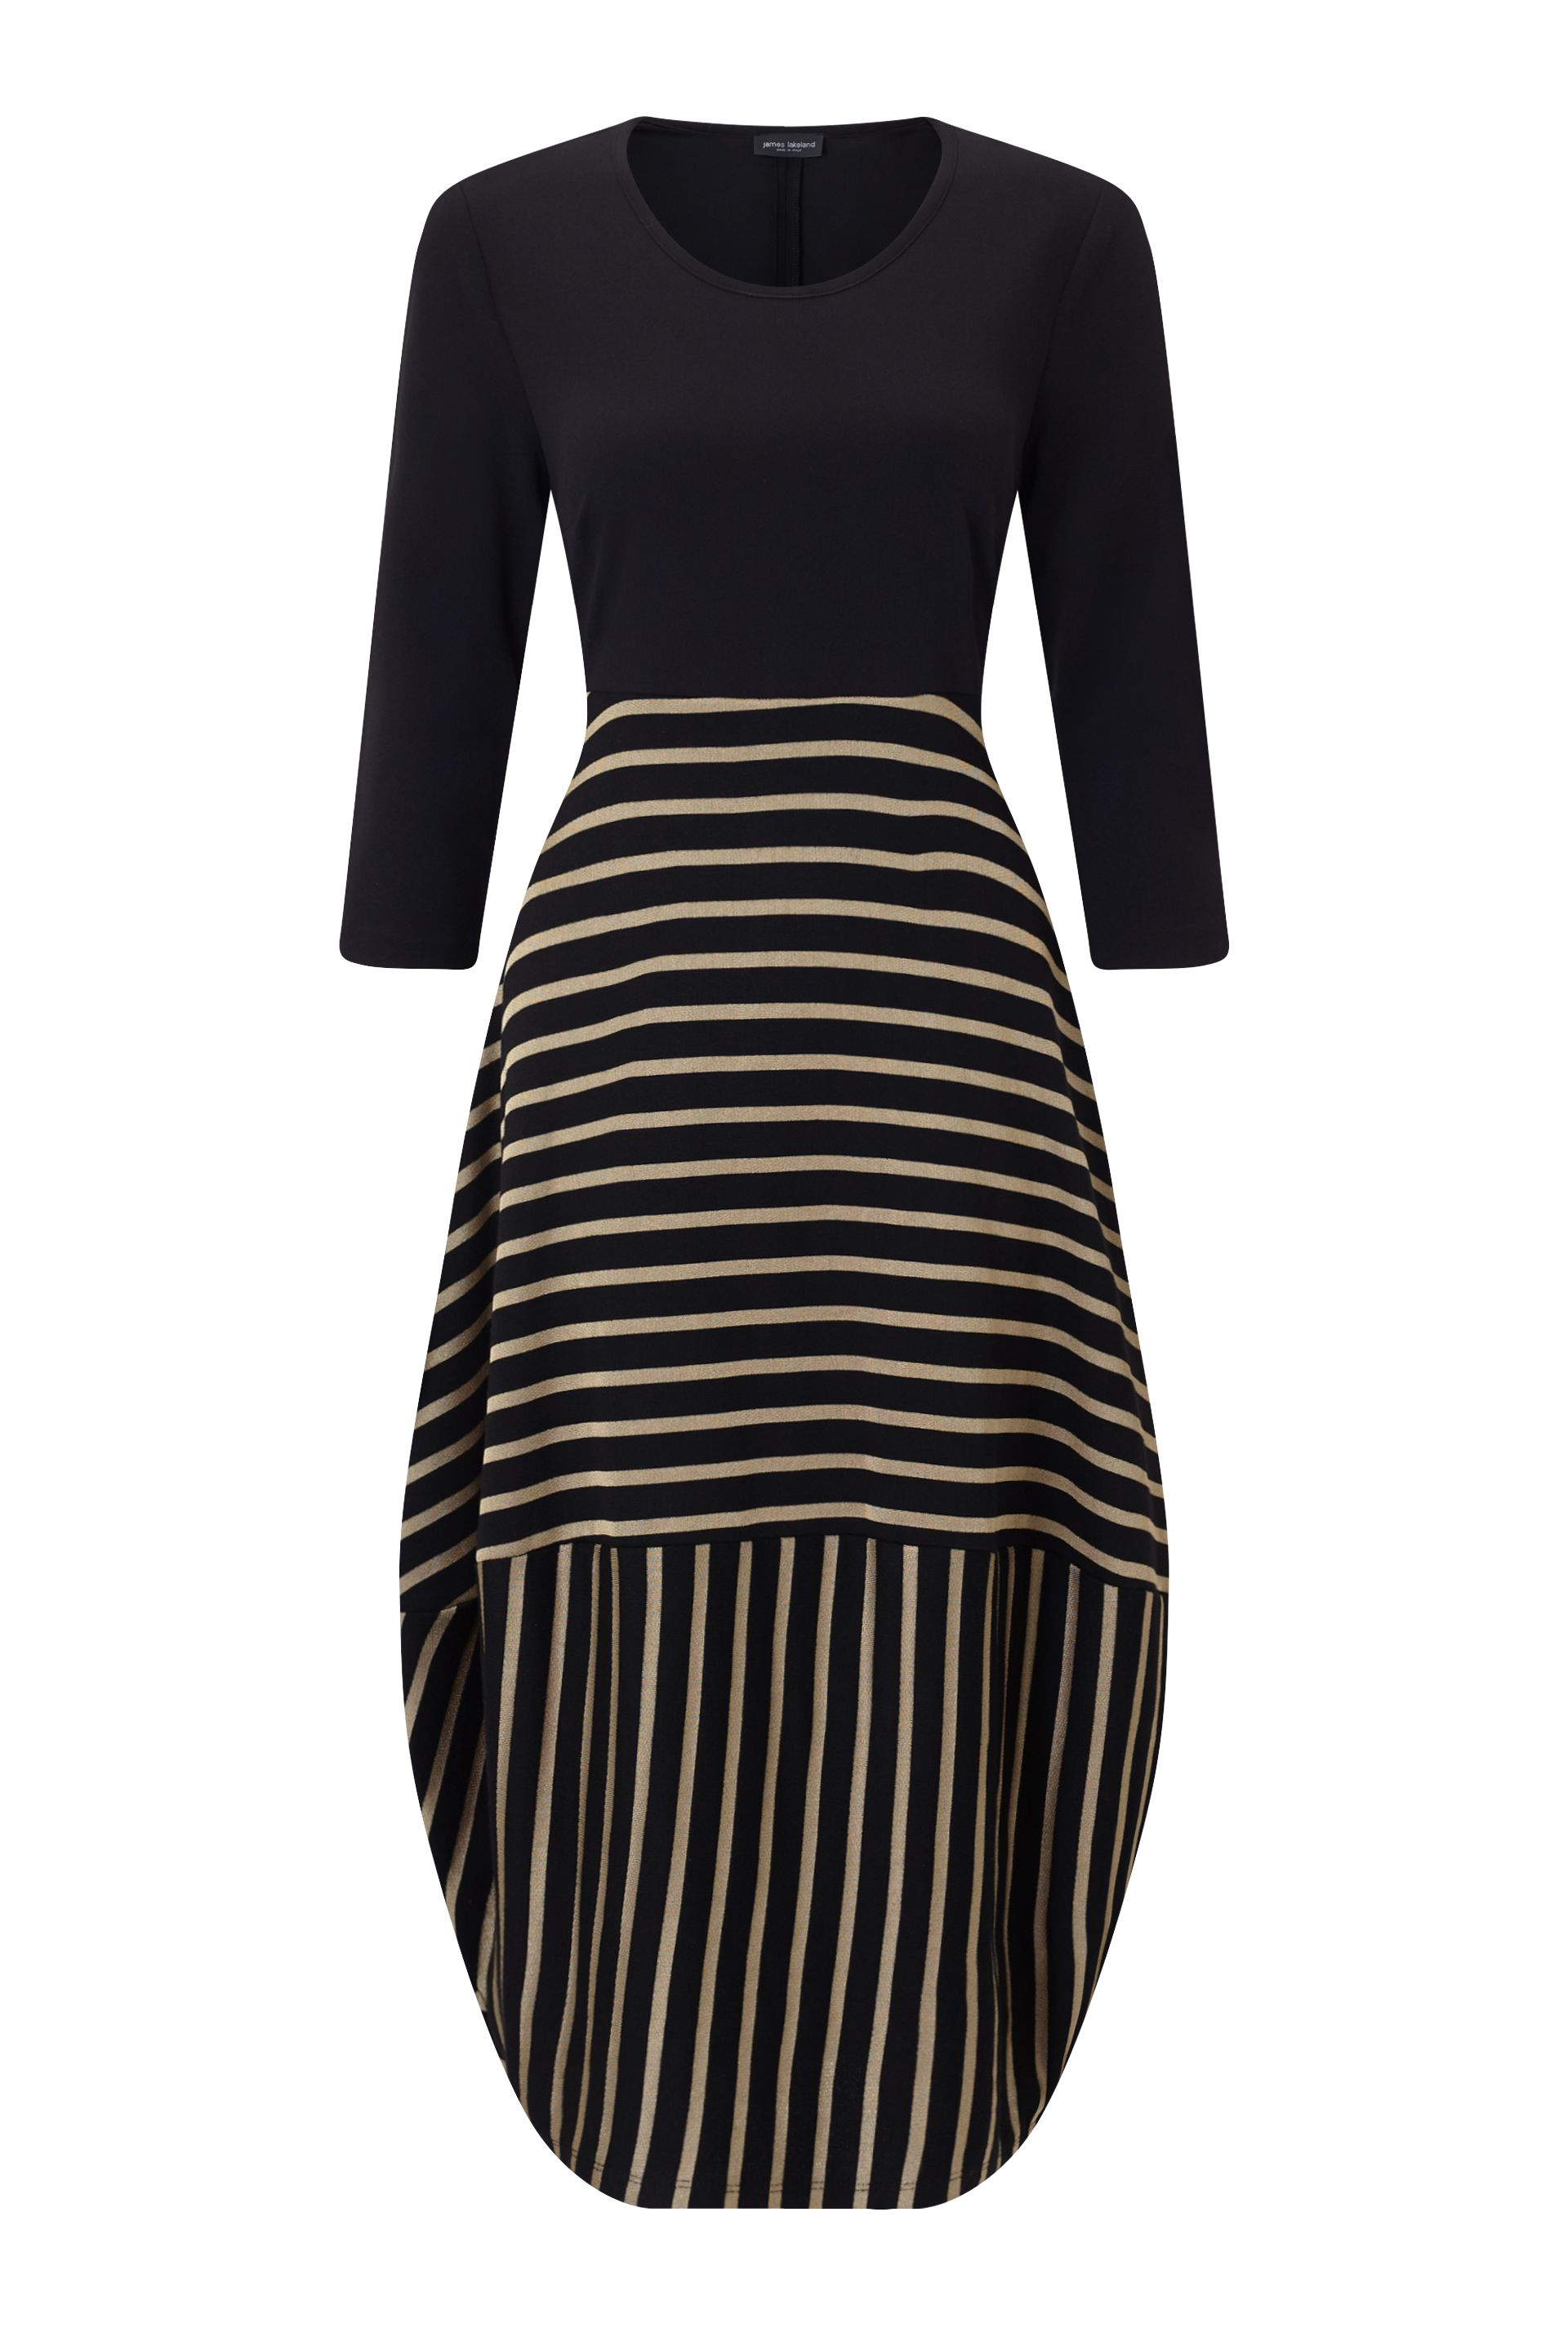 James Lakeland Balloon Stripe Dress, Black